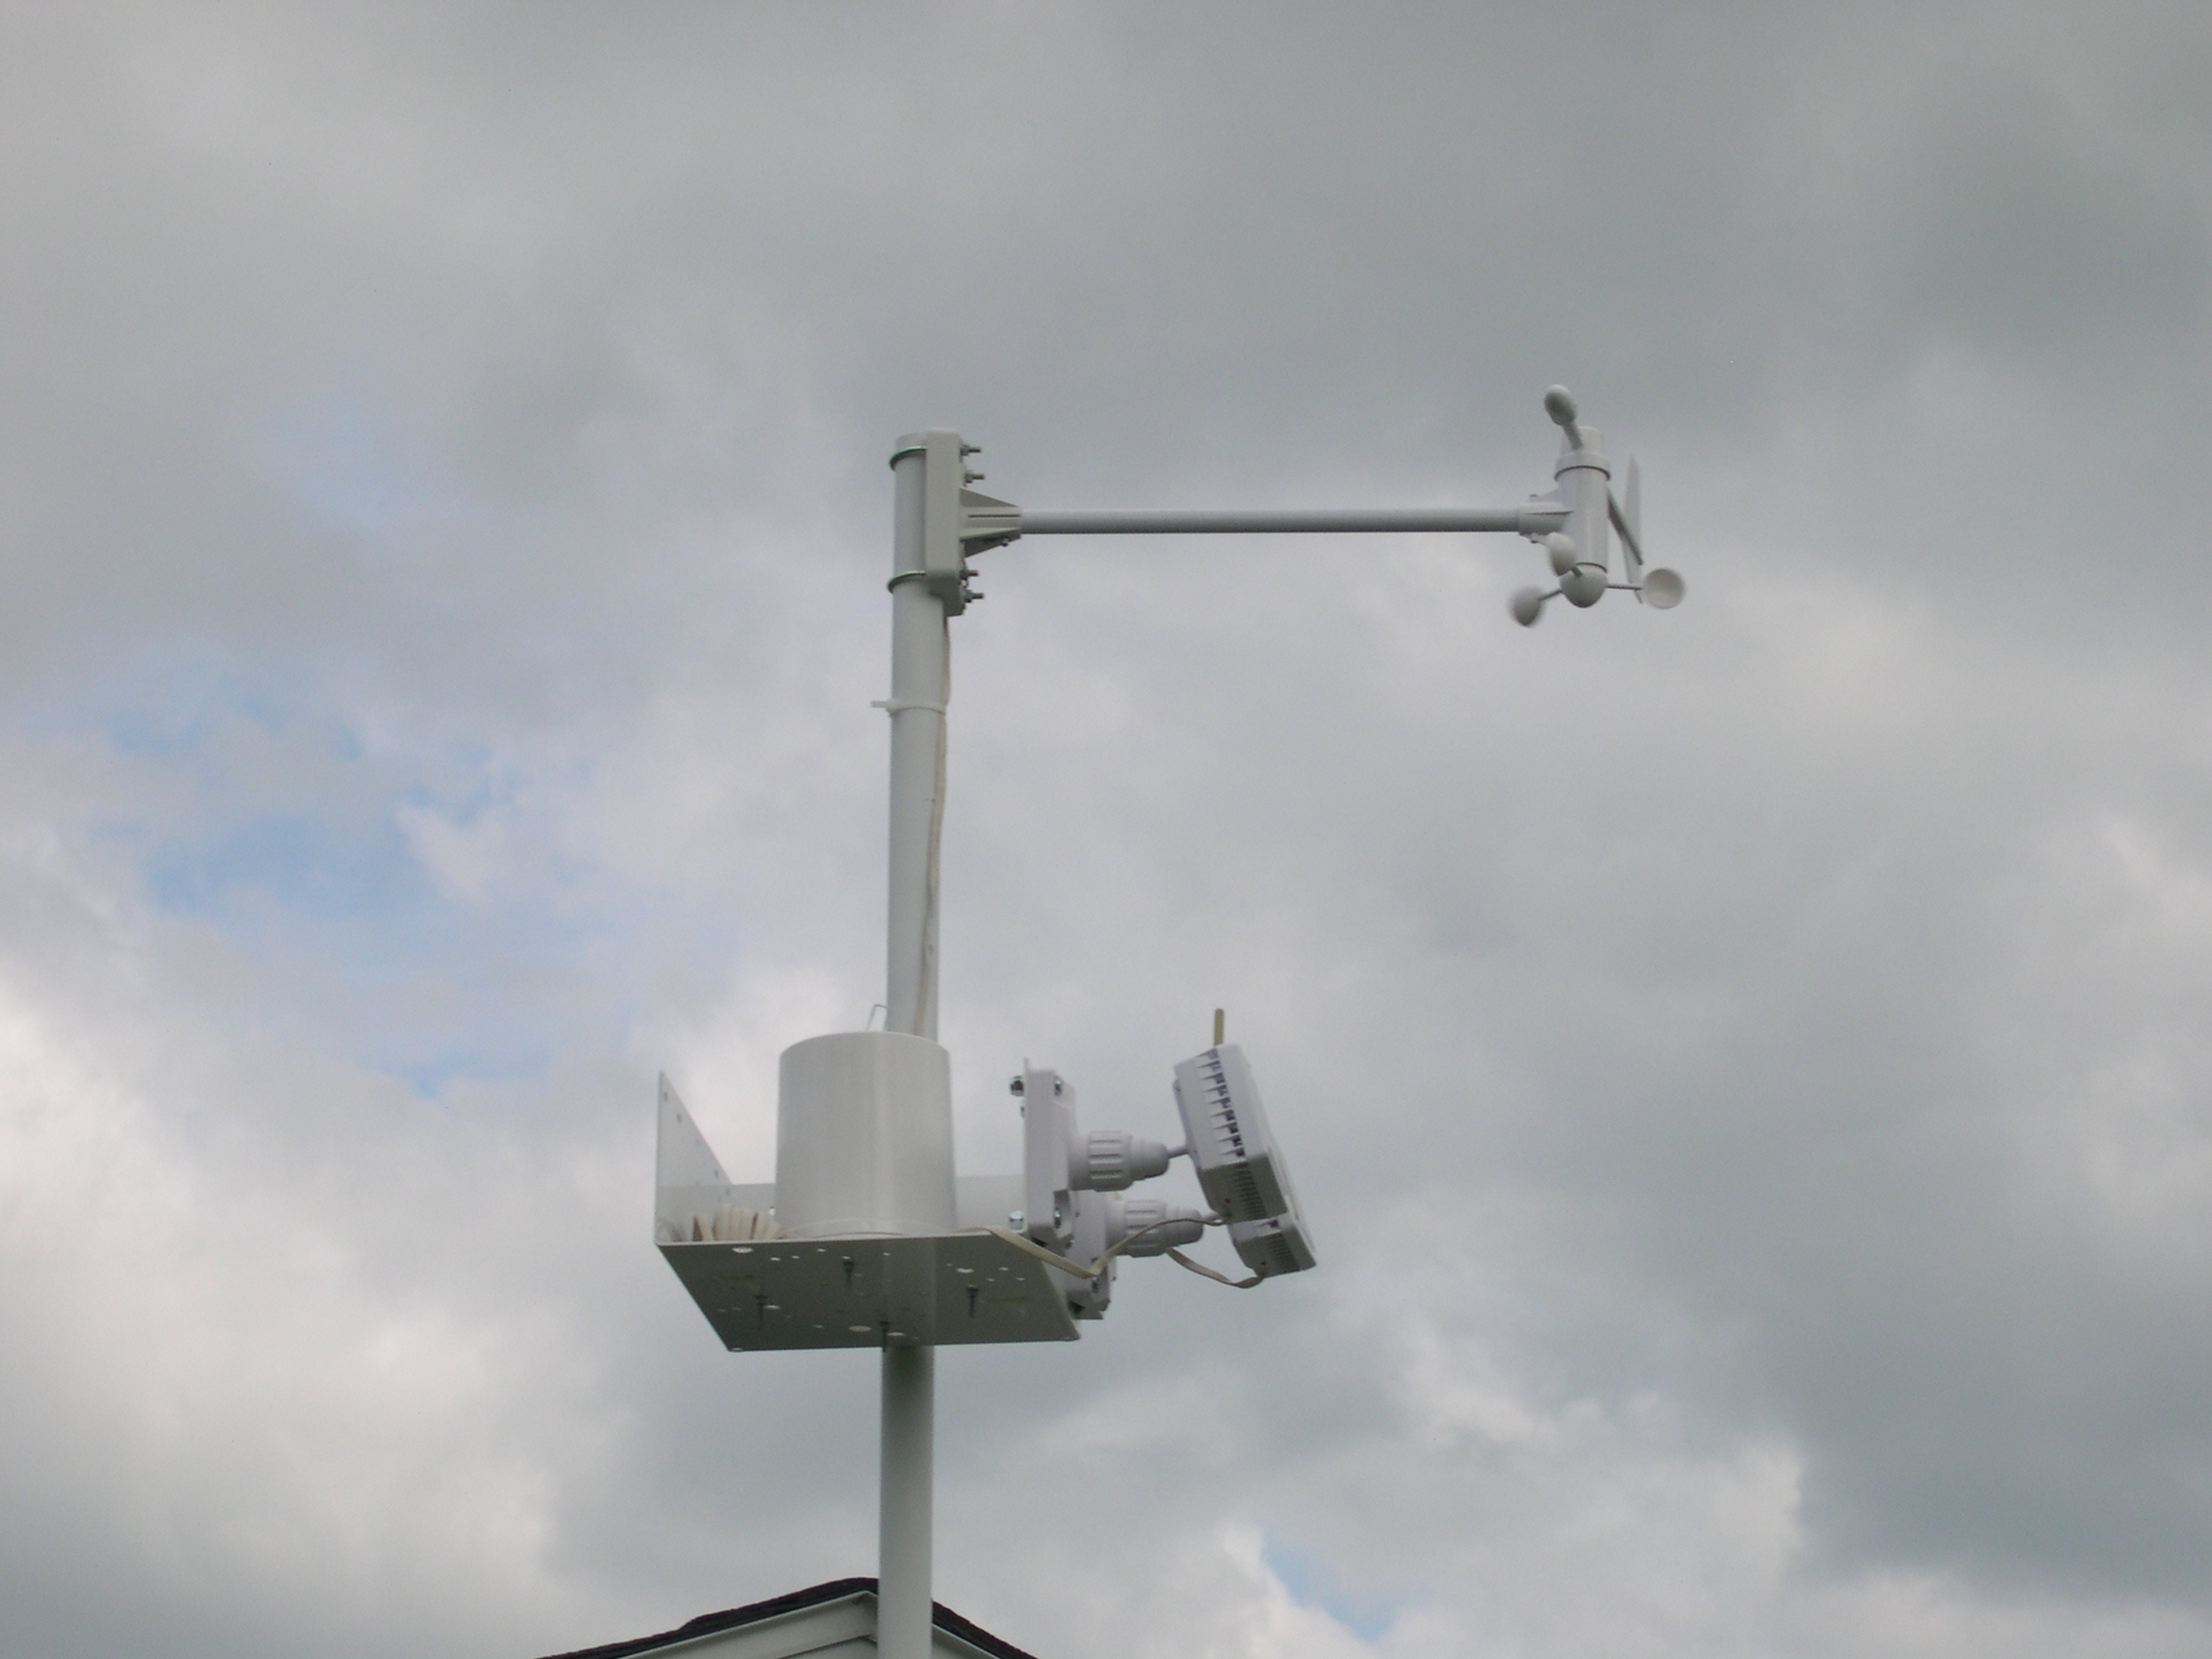 DSCN6765.JPG - Close up of  Wind Vane/Speed and Rain Collection Sensors